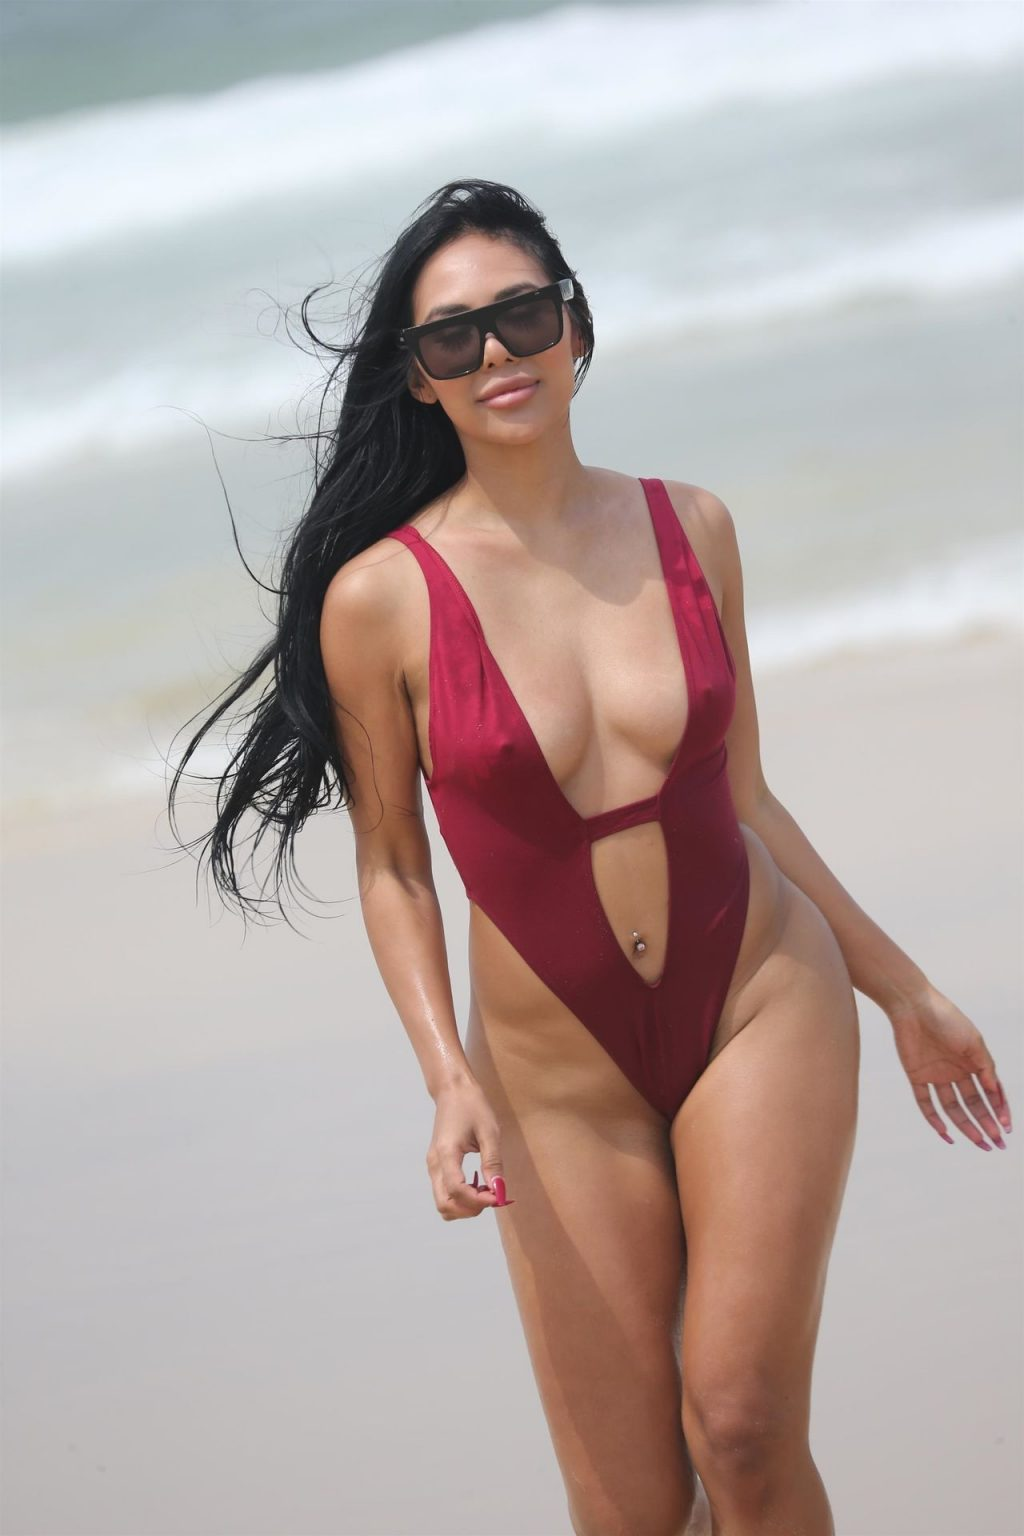 Nicole gold coast escort